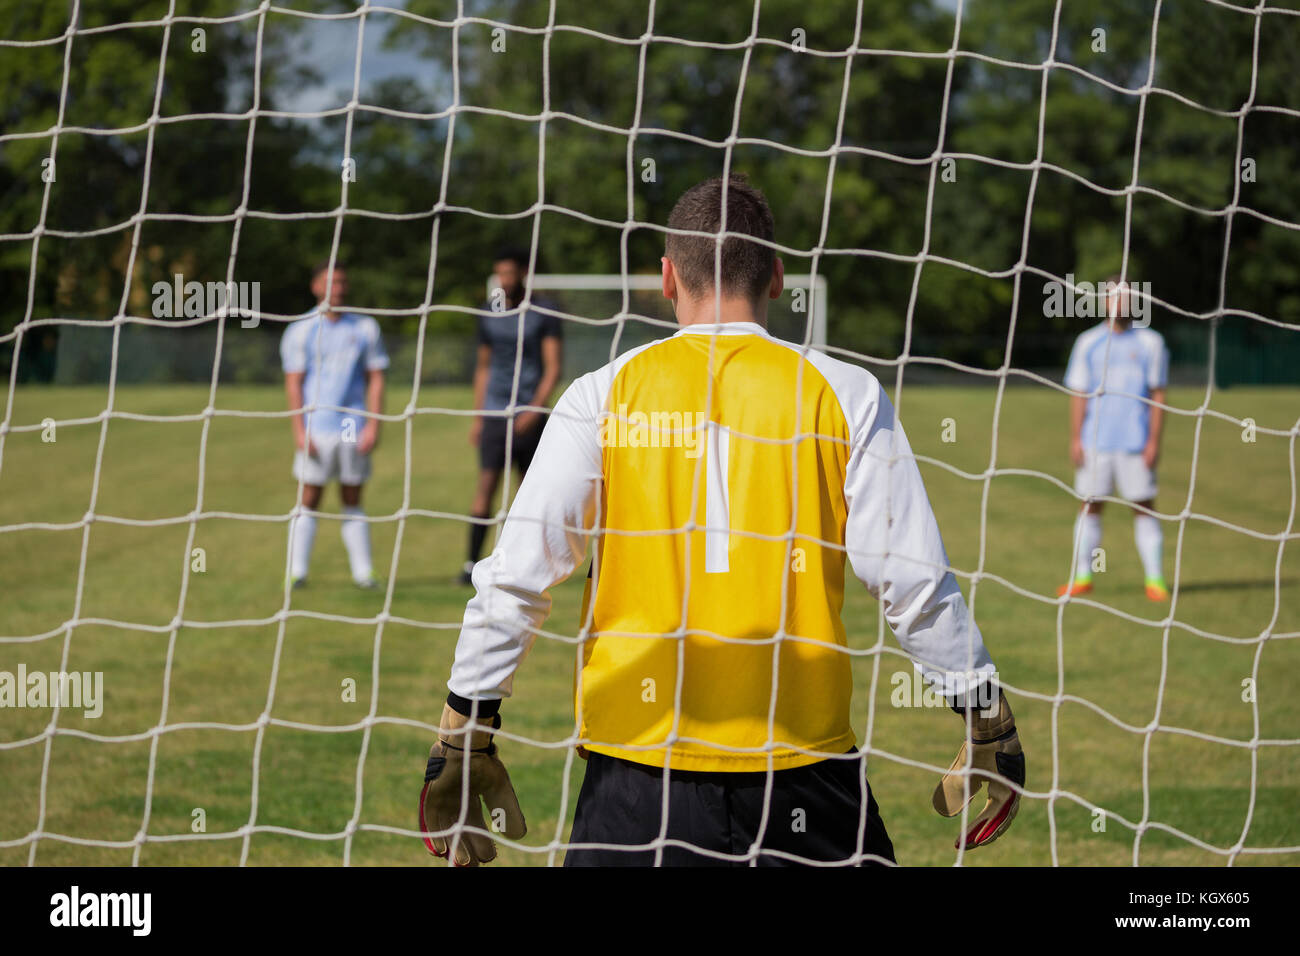 Soccer players ready to kick ball from penalty spot on a sunny day - Stock Image